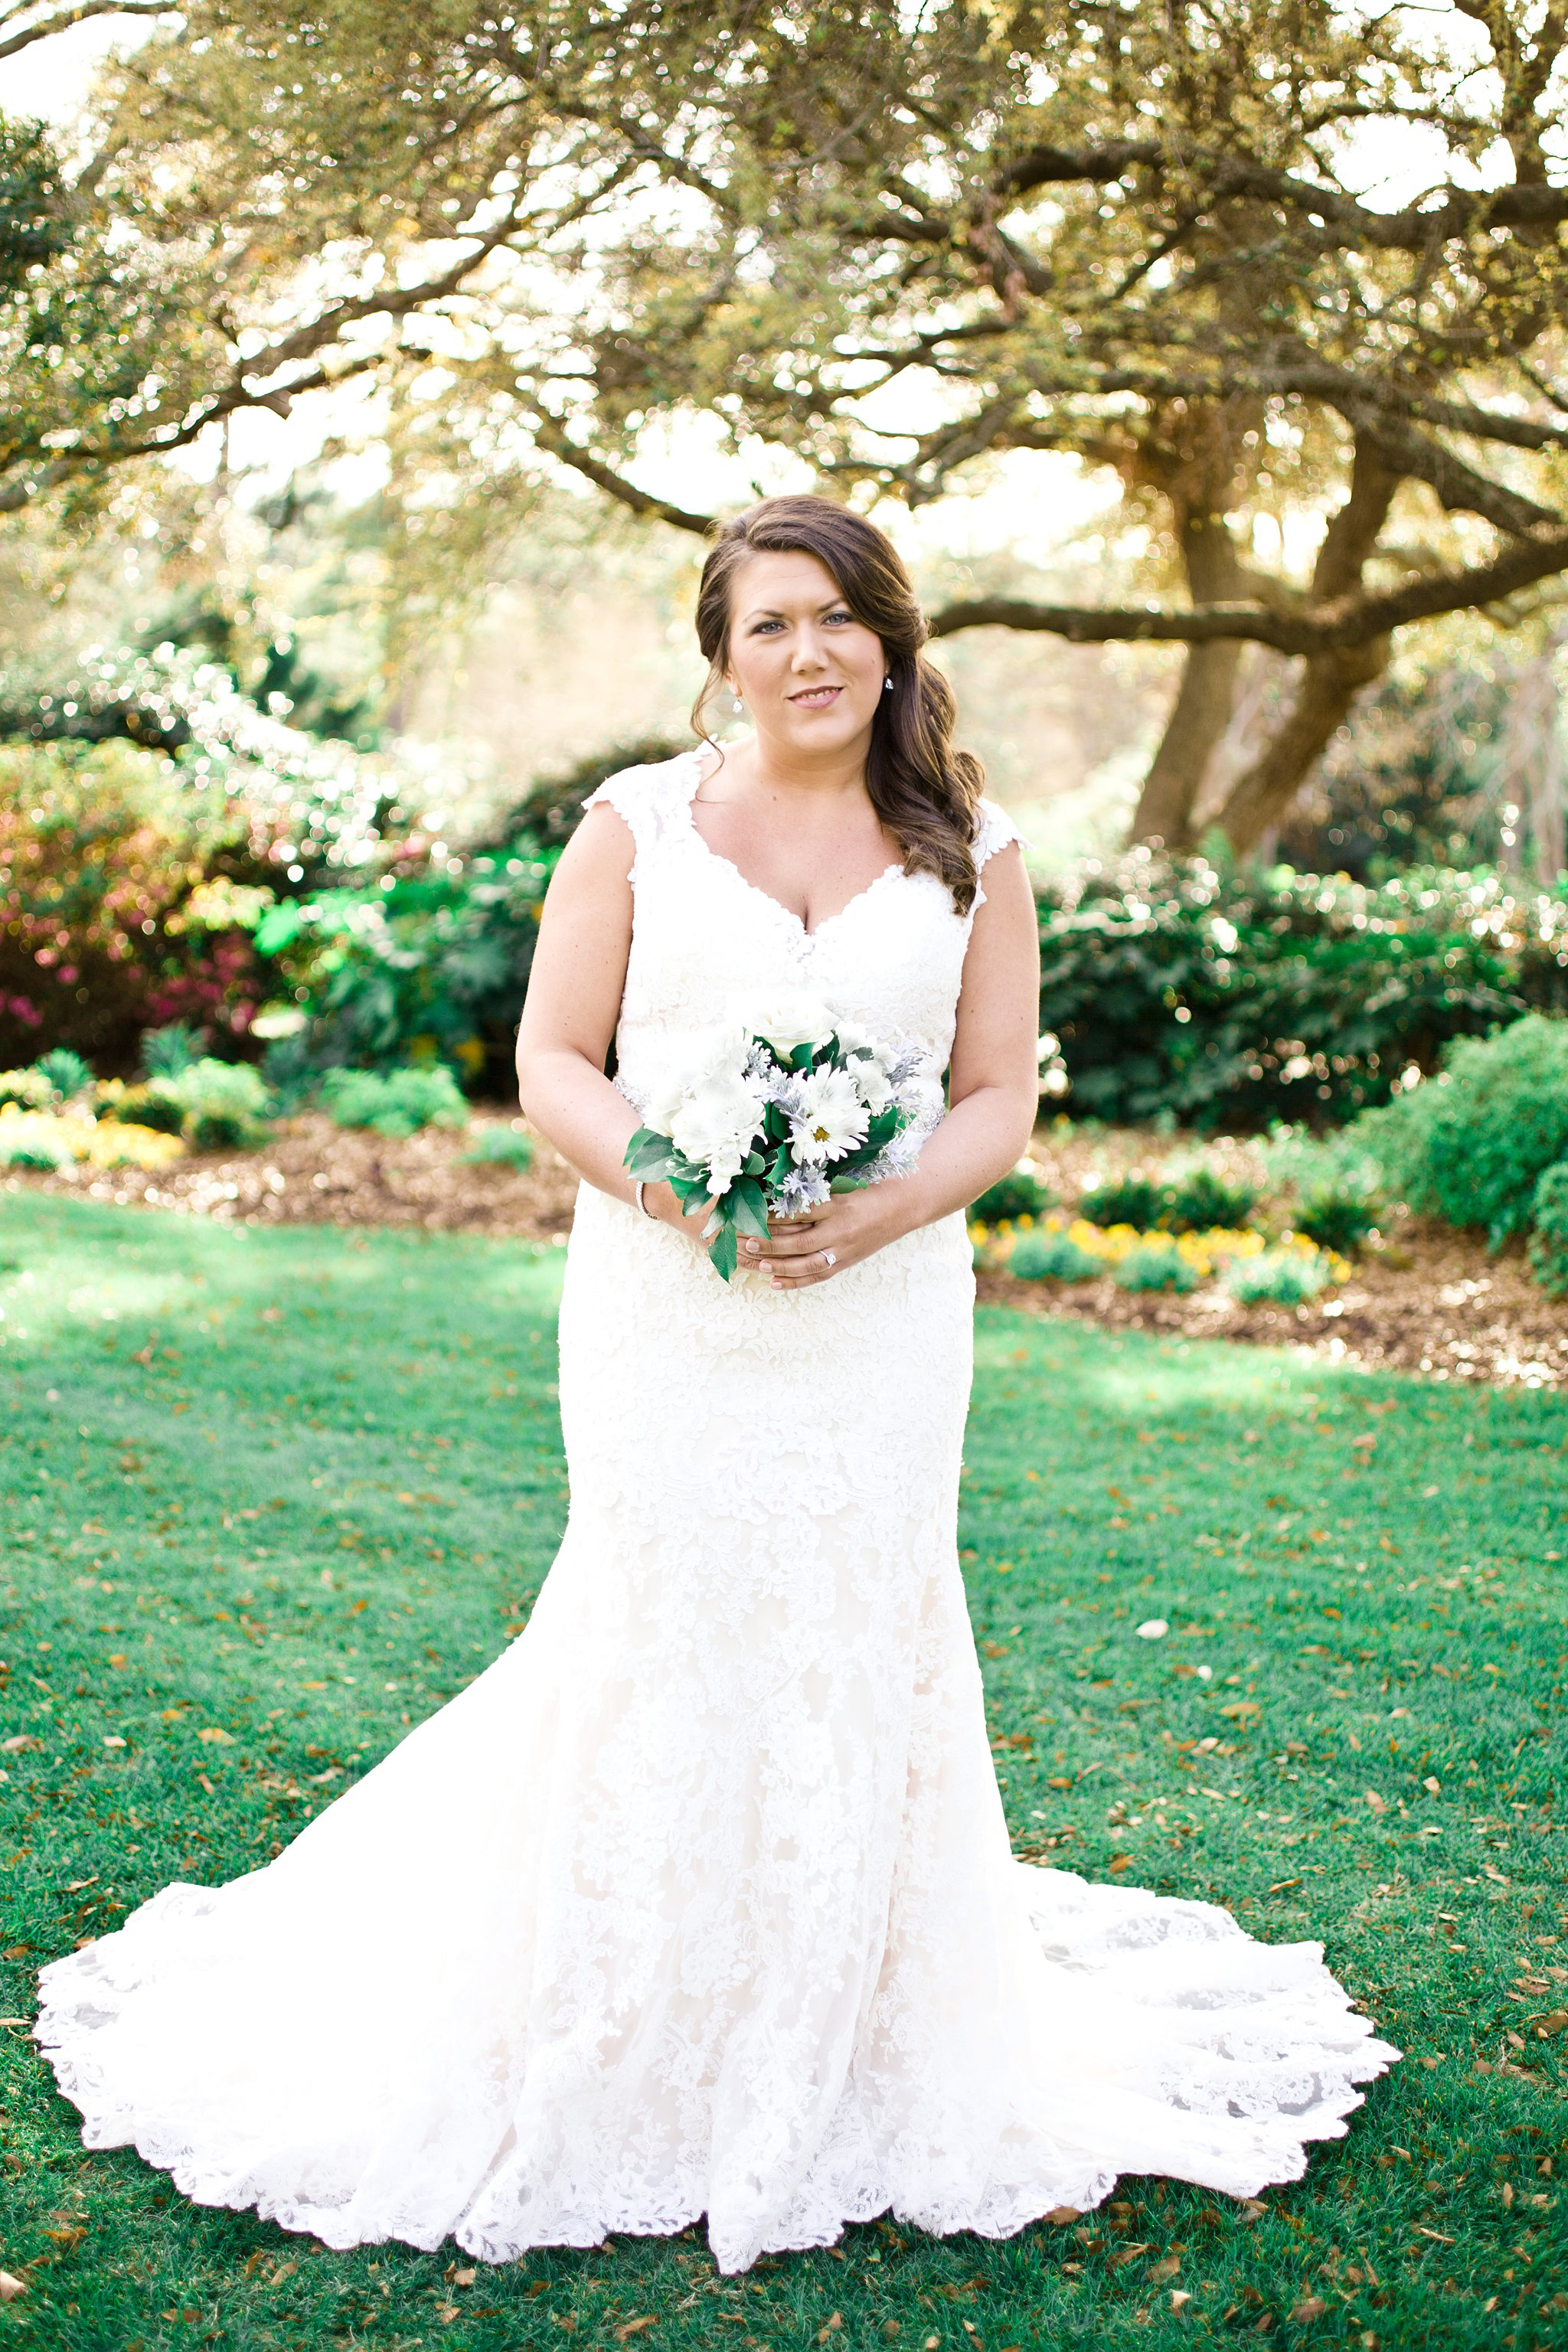 litchfield-golf-country-club-bridal-session-pawleys-island-sc-photos_0088.jpg